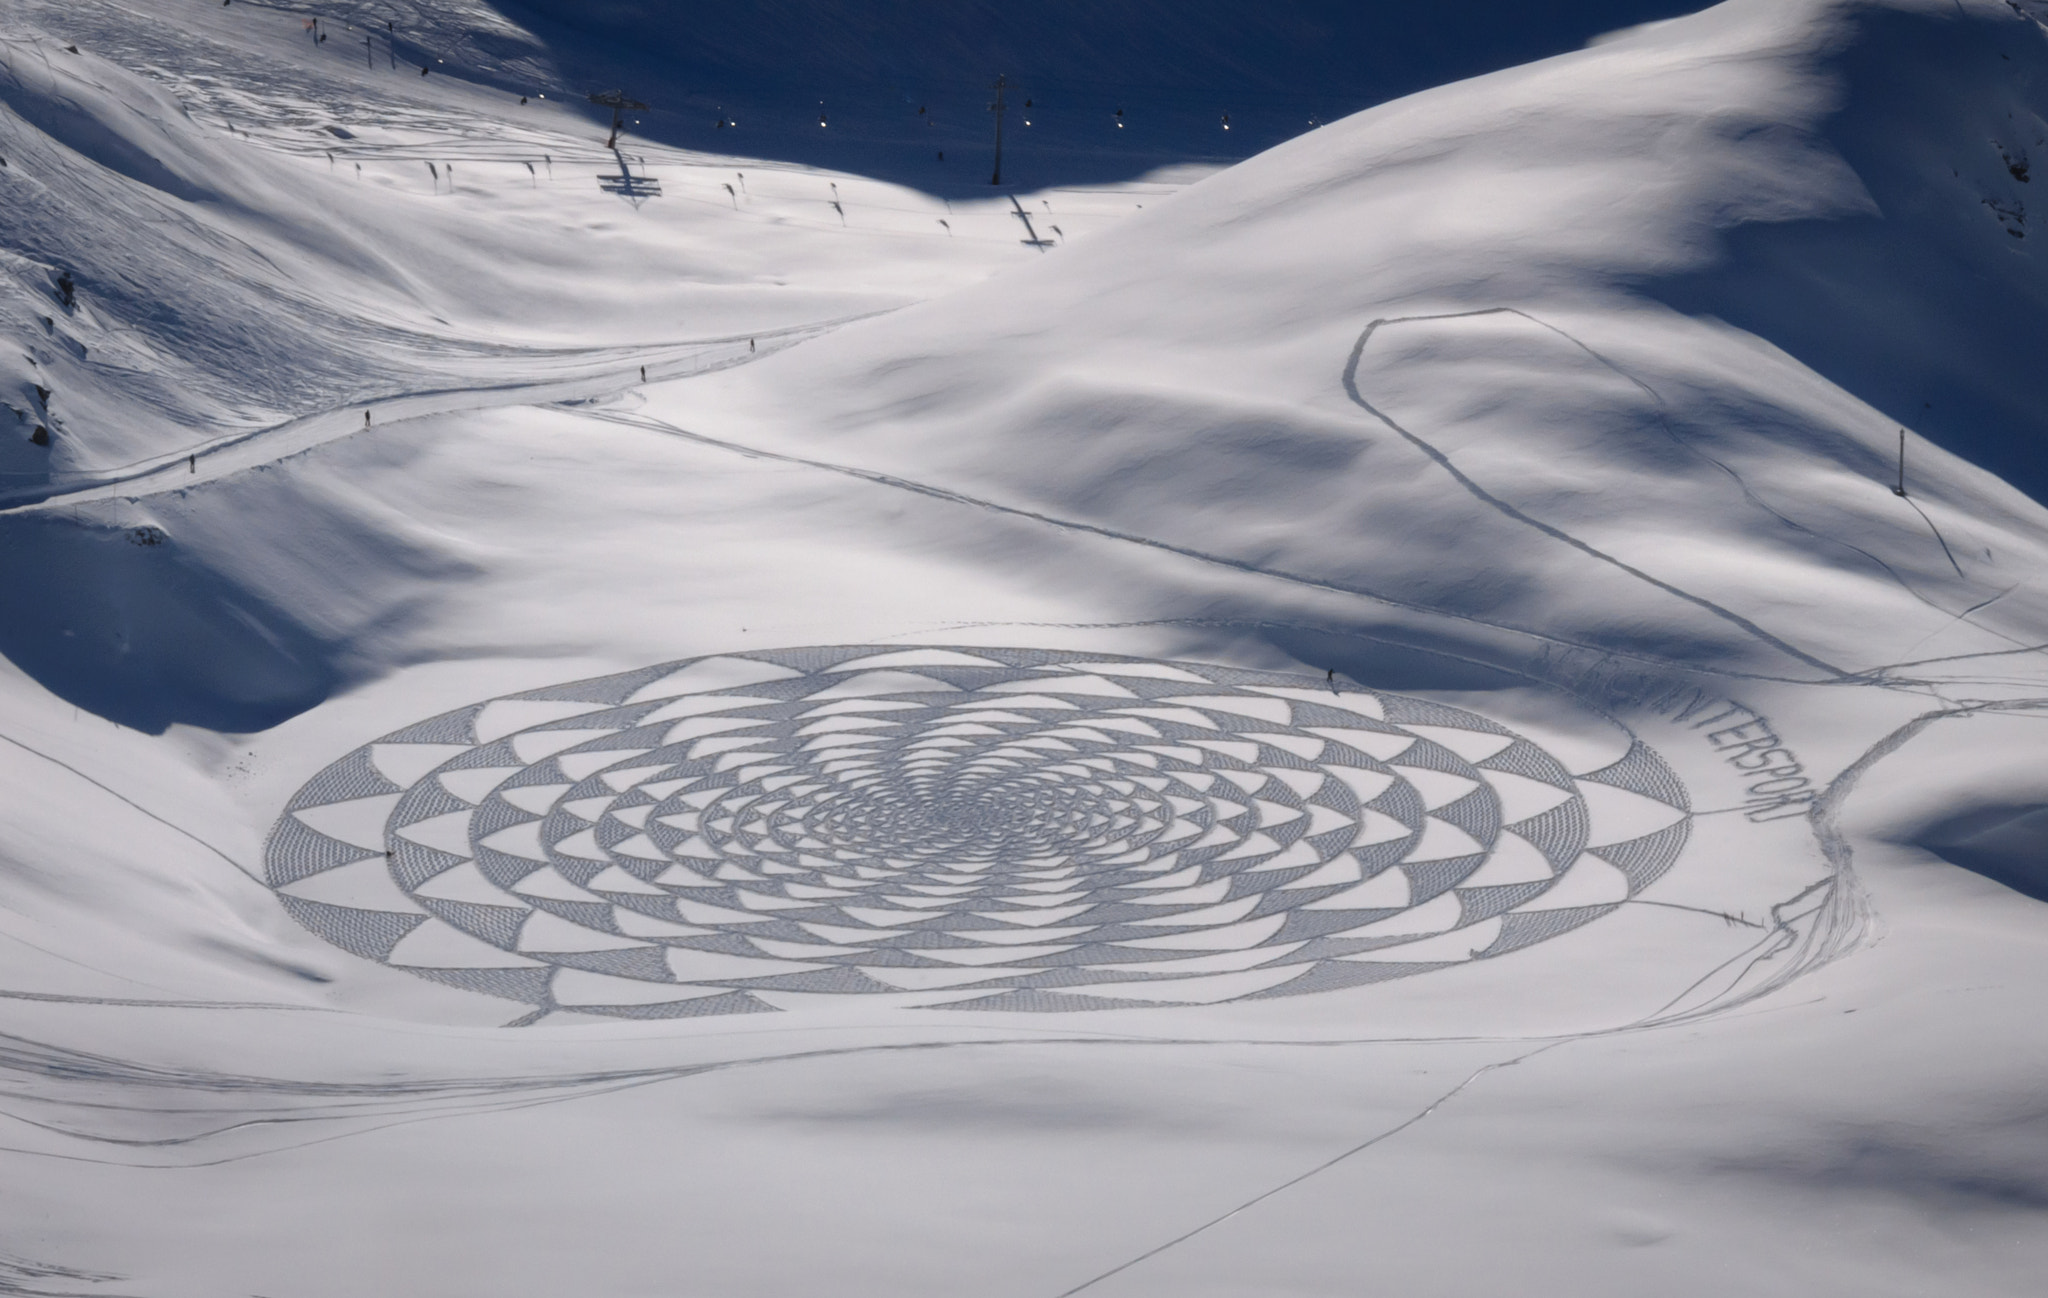 Photograph Drawing in the snow by Amandine Blanckaert on 500px